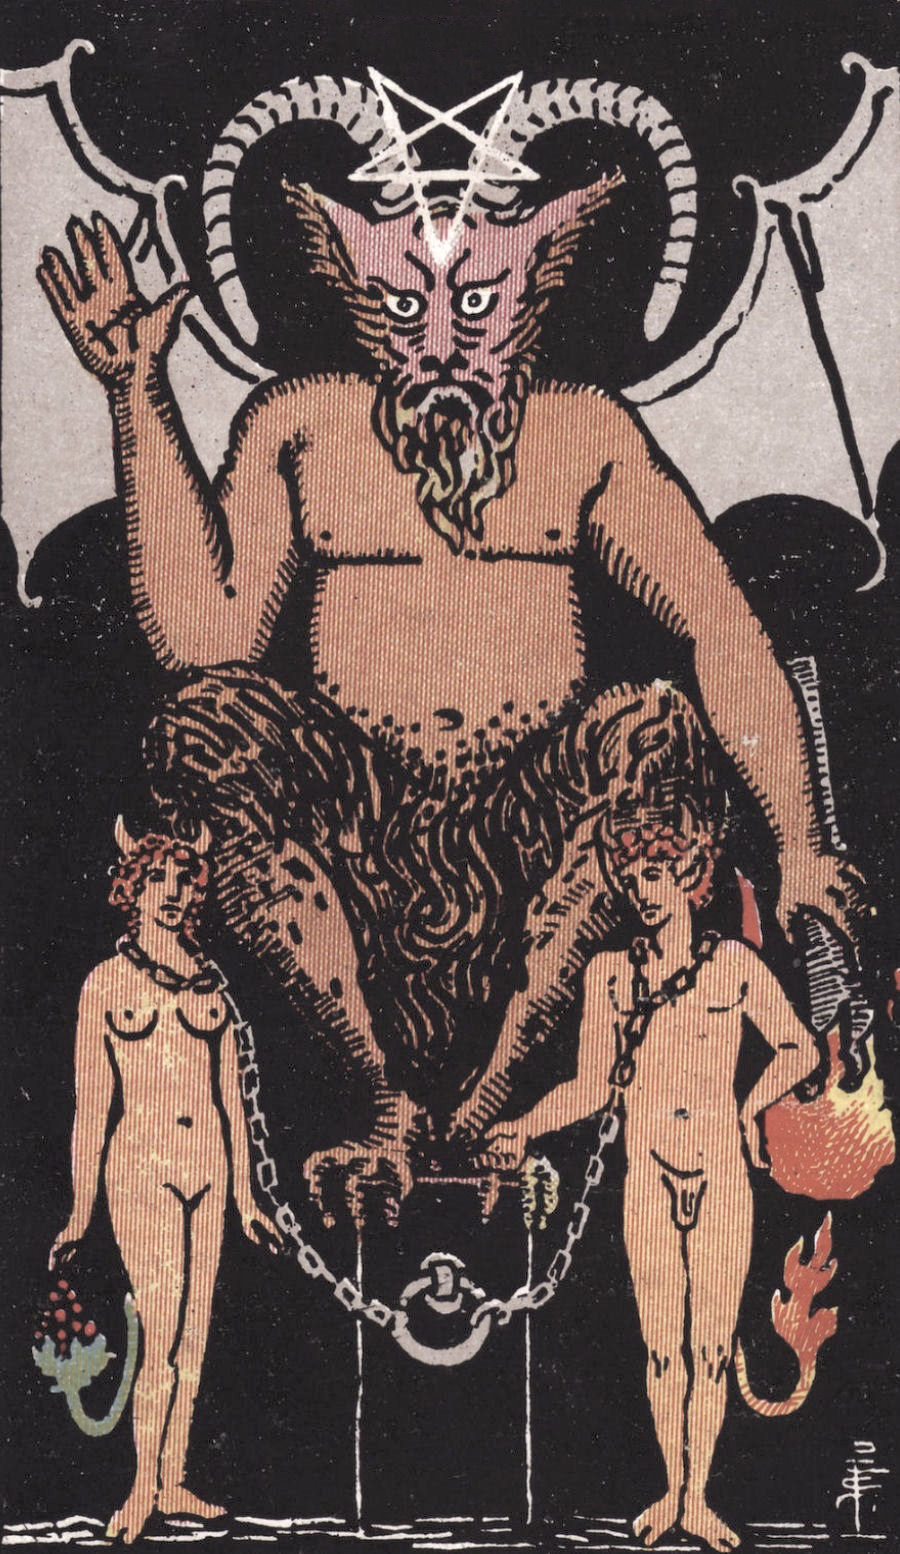 The Devil - Well, well! This card certainly looks naughty. The Devil shows us how it sometimes feels good to be bad. Doing this in a healthy, consensual manner can be toe-curlingly delicious. We can use The Devil's energy to explore parts of ourselves through our sexuality that get short shrift in everyday life. However, we can often seek out unhealthy relationships to get this thrill, unfortunately to our own detriment.